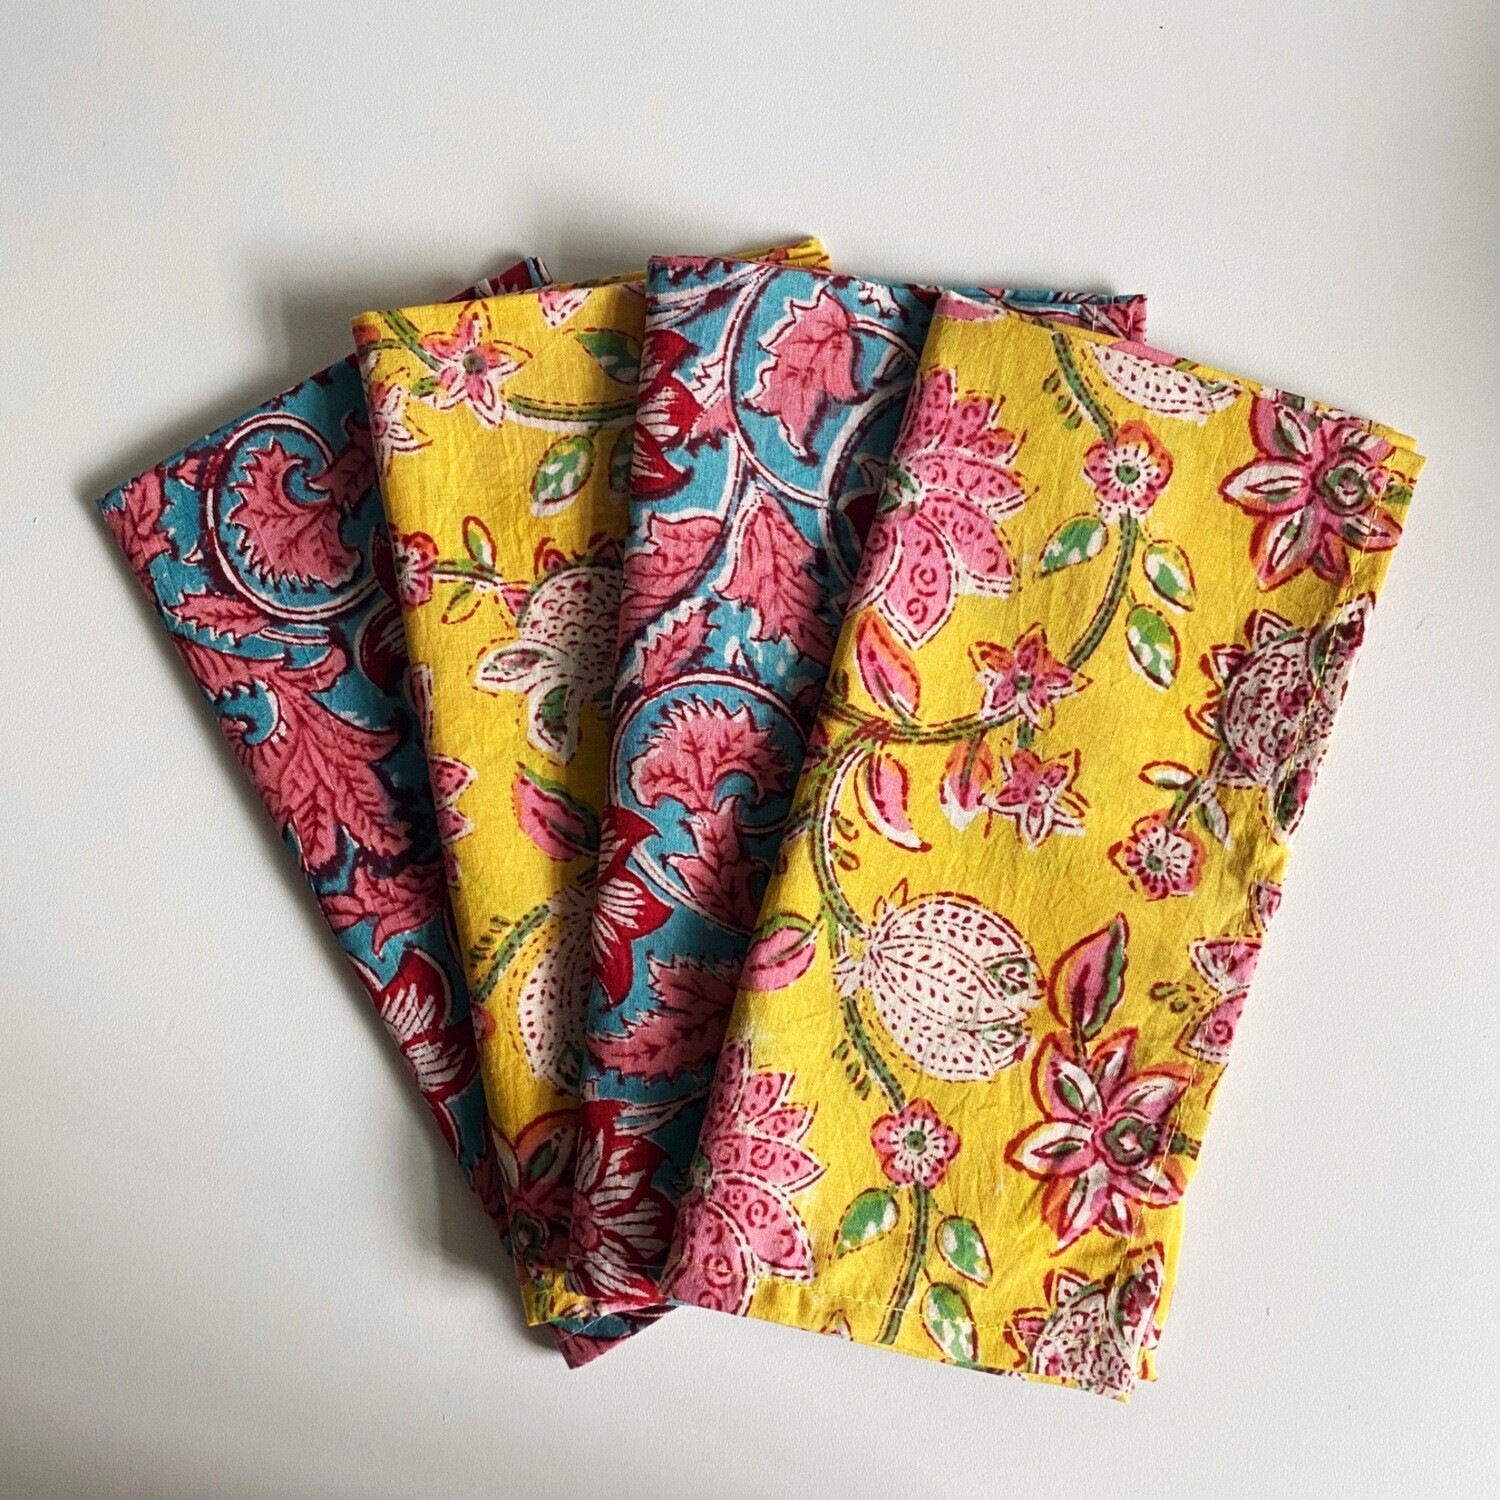 Hand Block Printed Napkins In Blooming Marvellous And Sunny Disposition